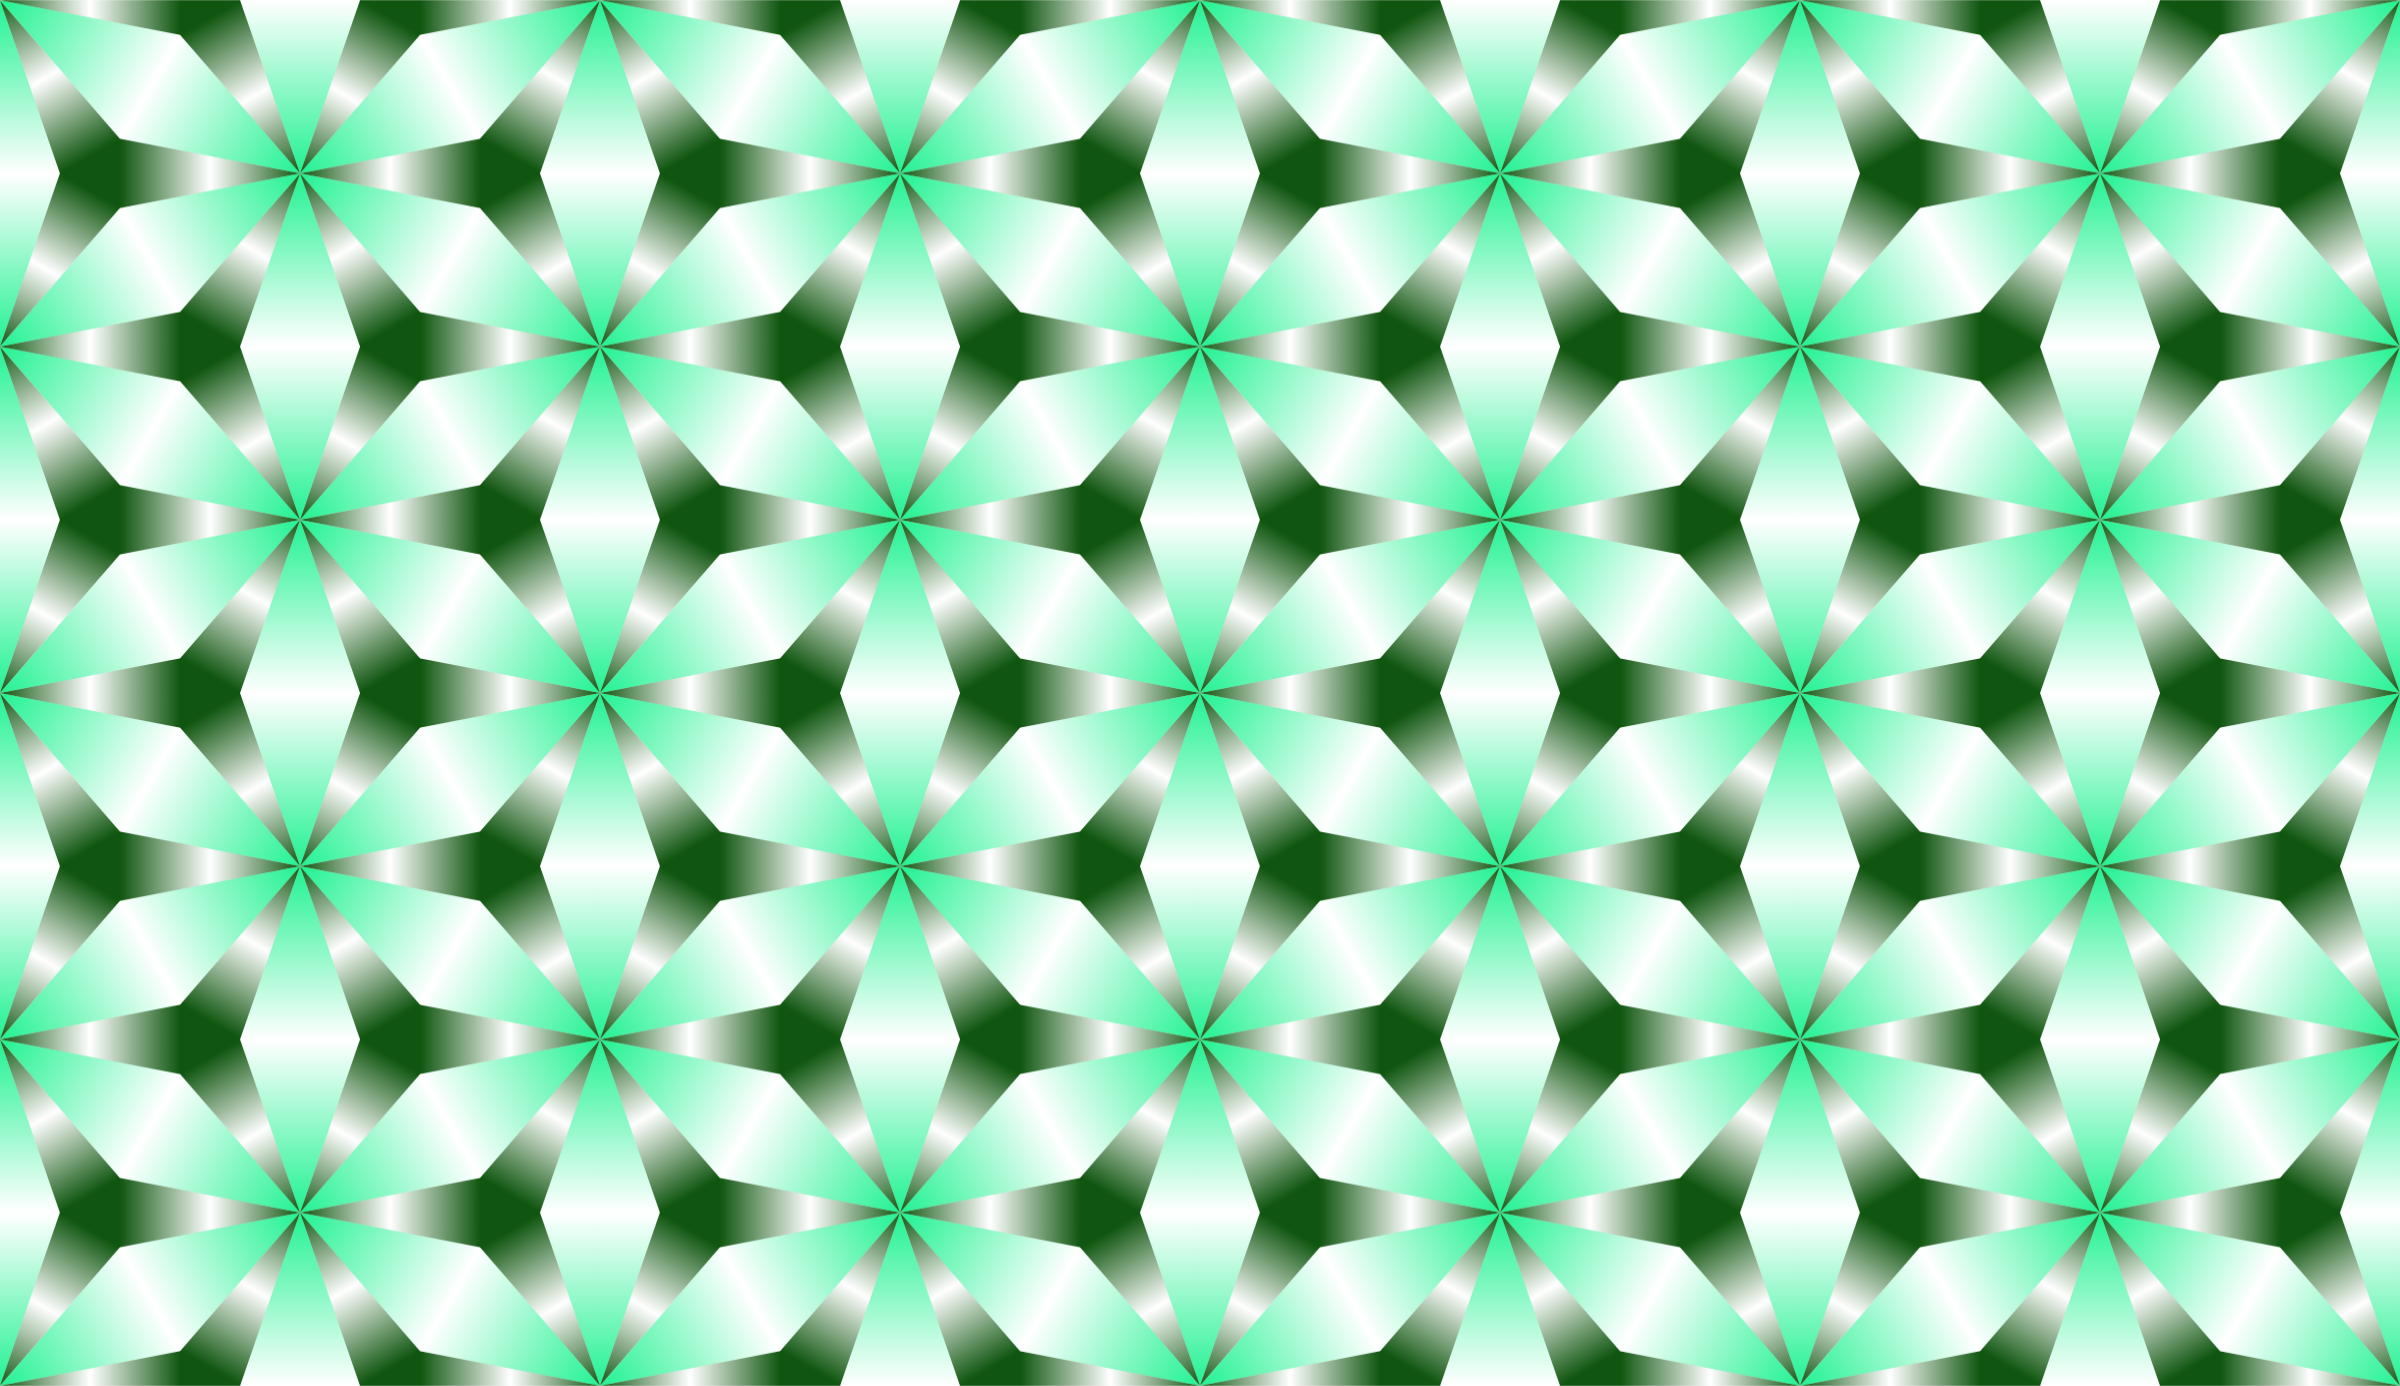 Tessellation 16 (colour 3) by Firkin